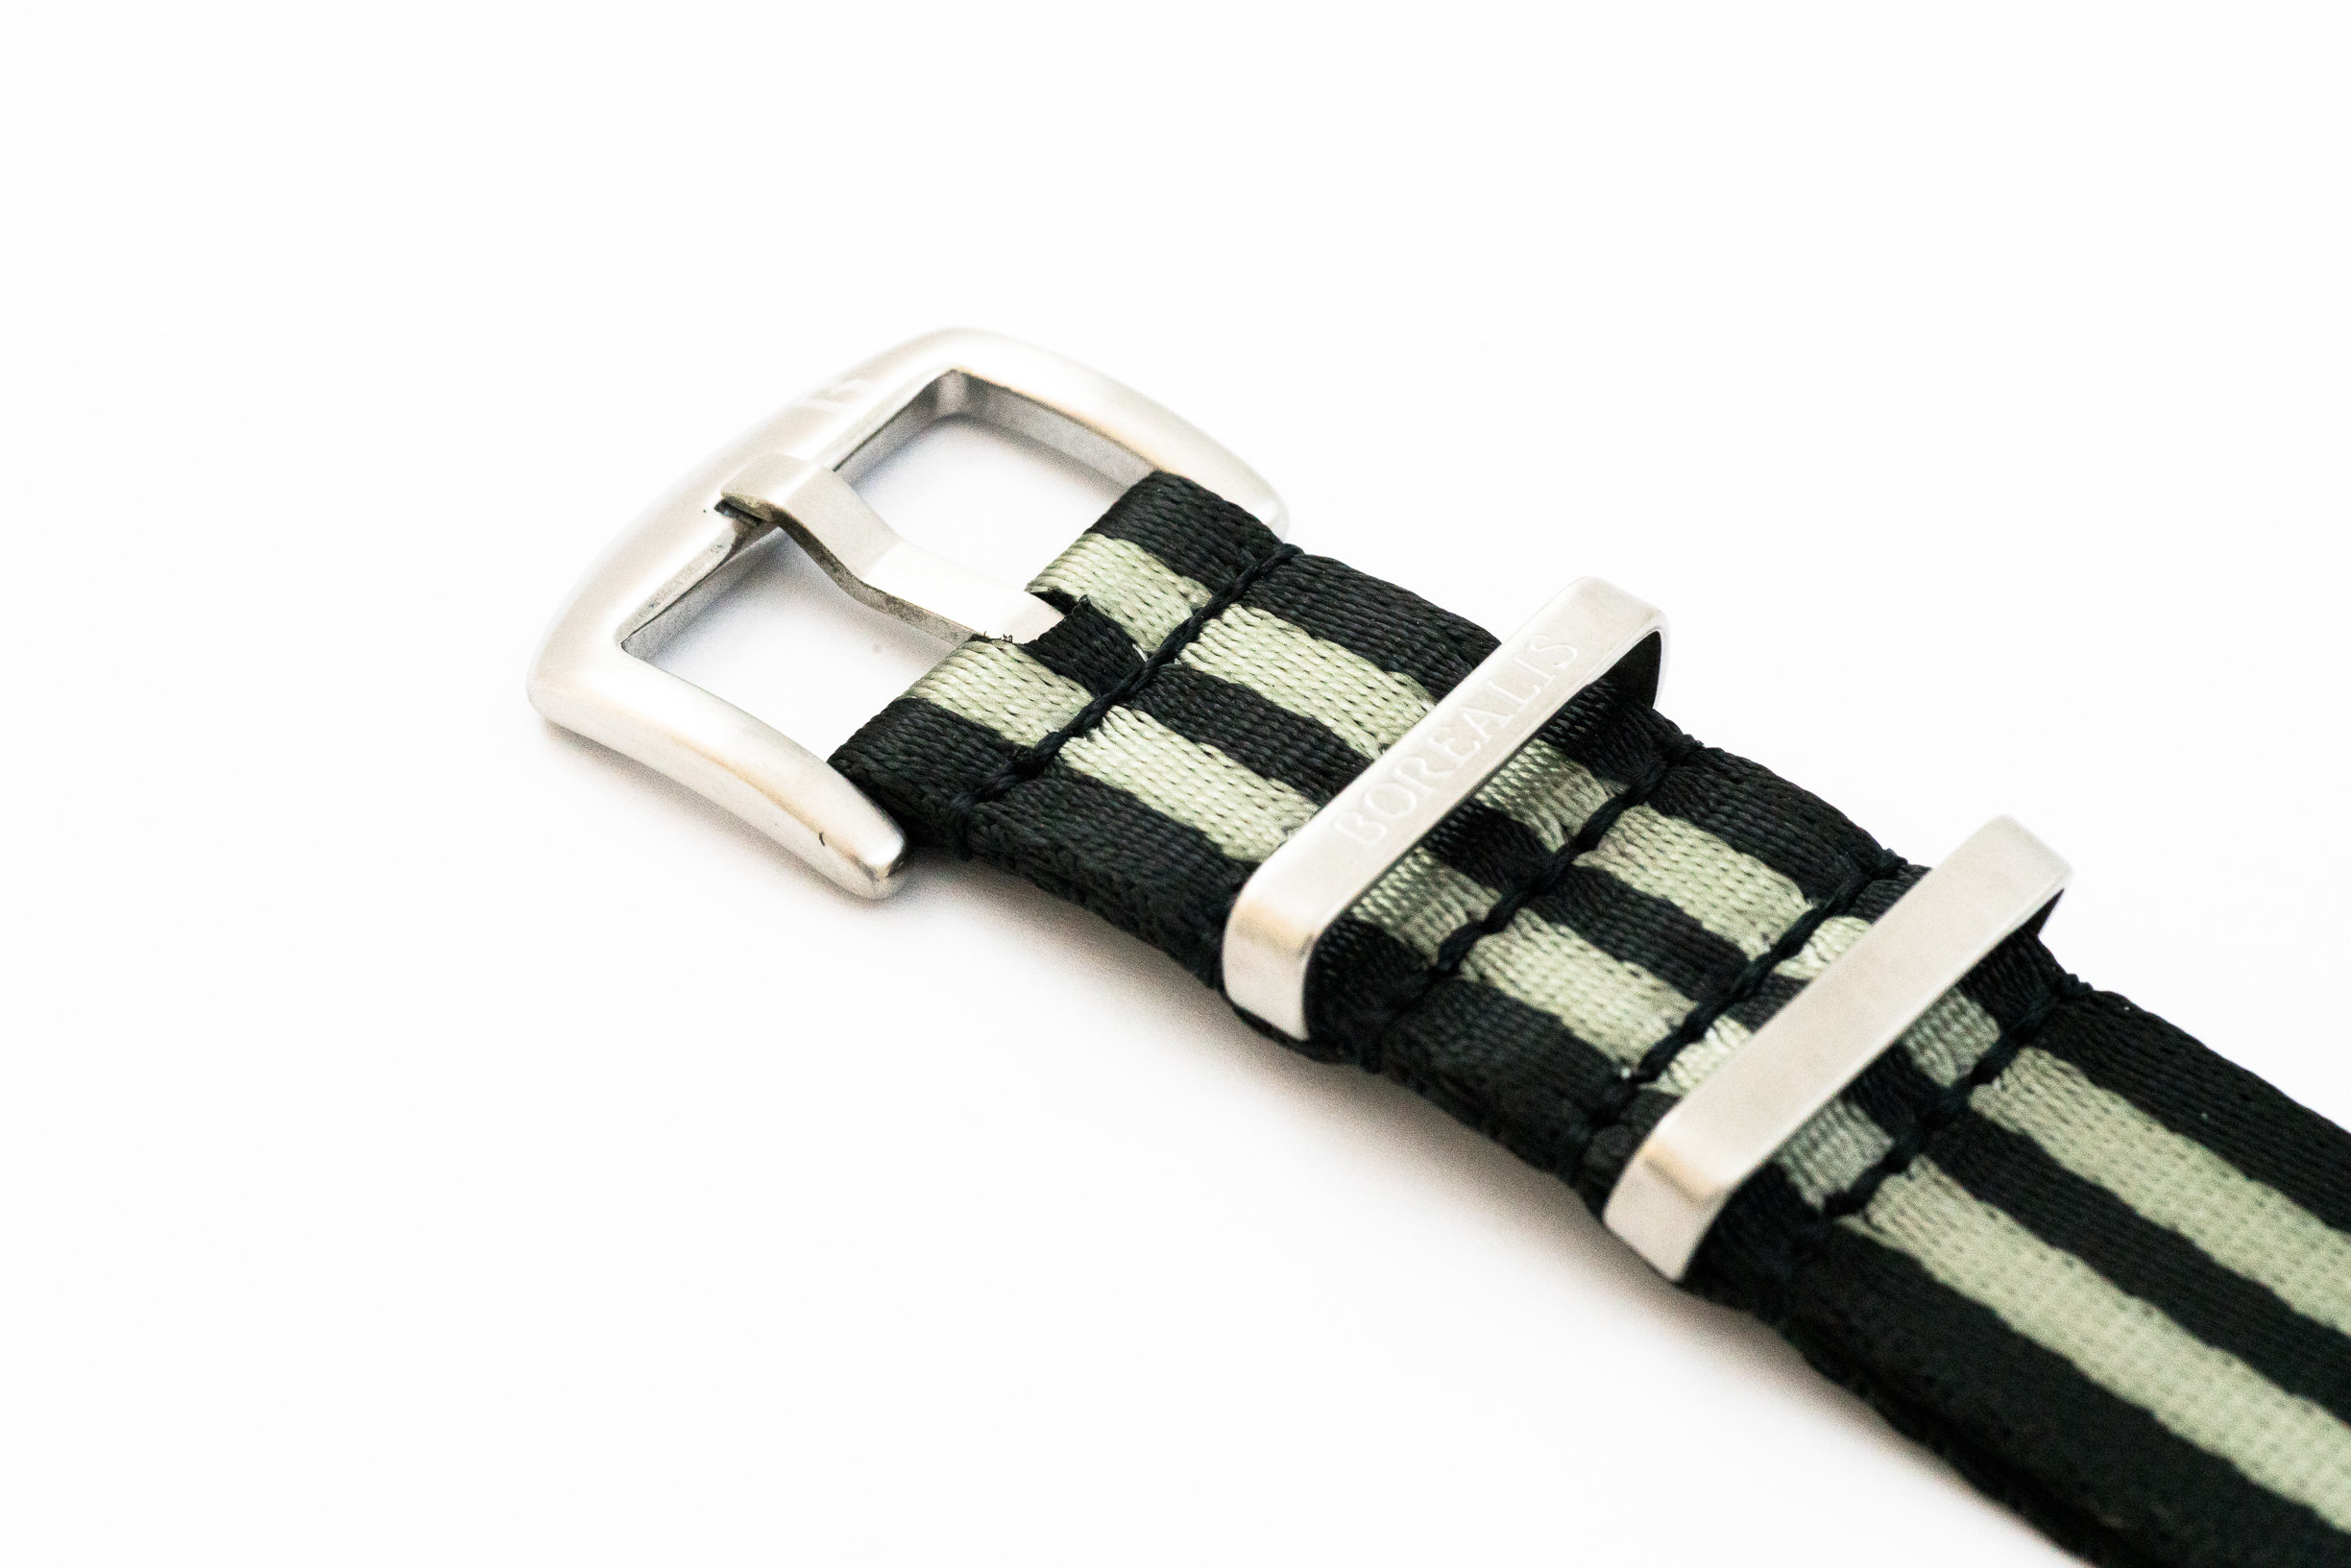 Premium Nato style seatbelt nylon strap 22mm size two tone black grey